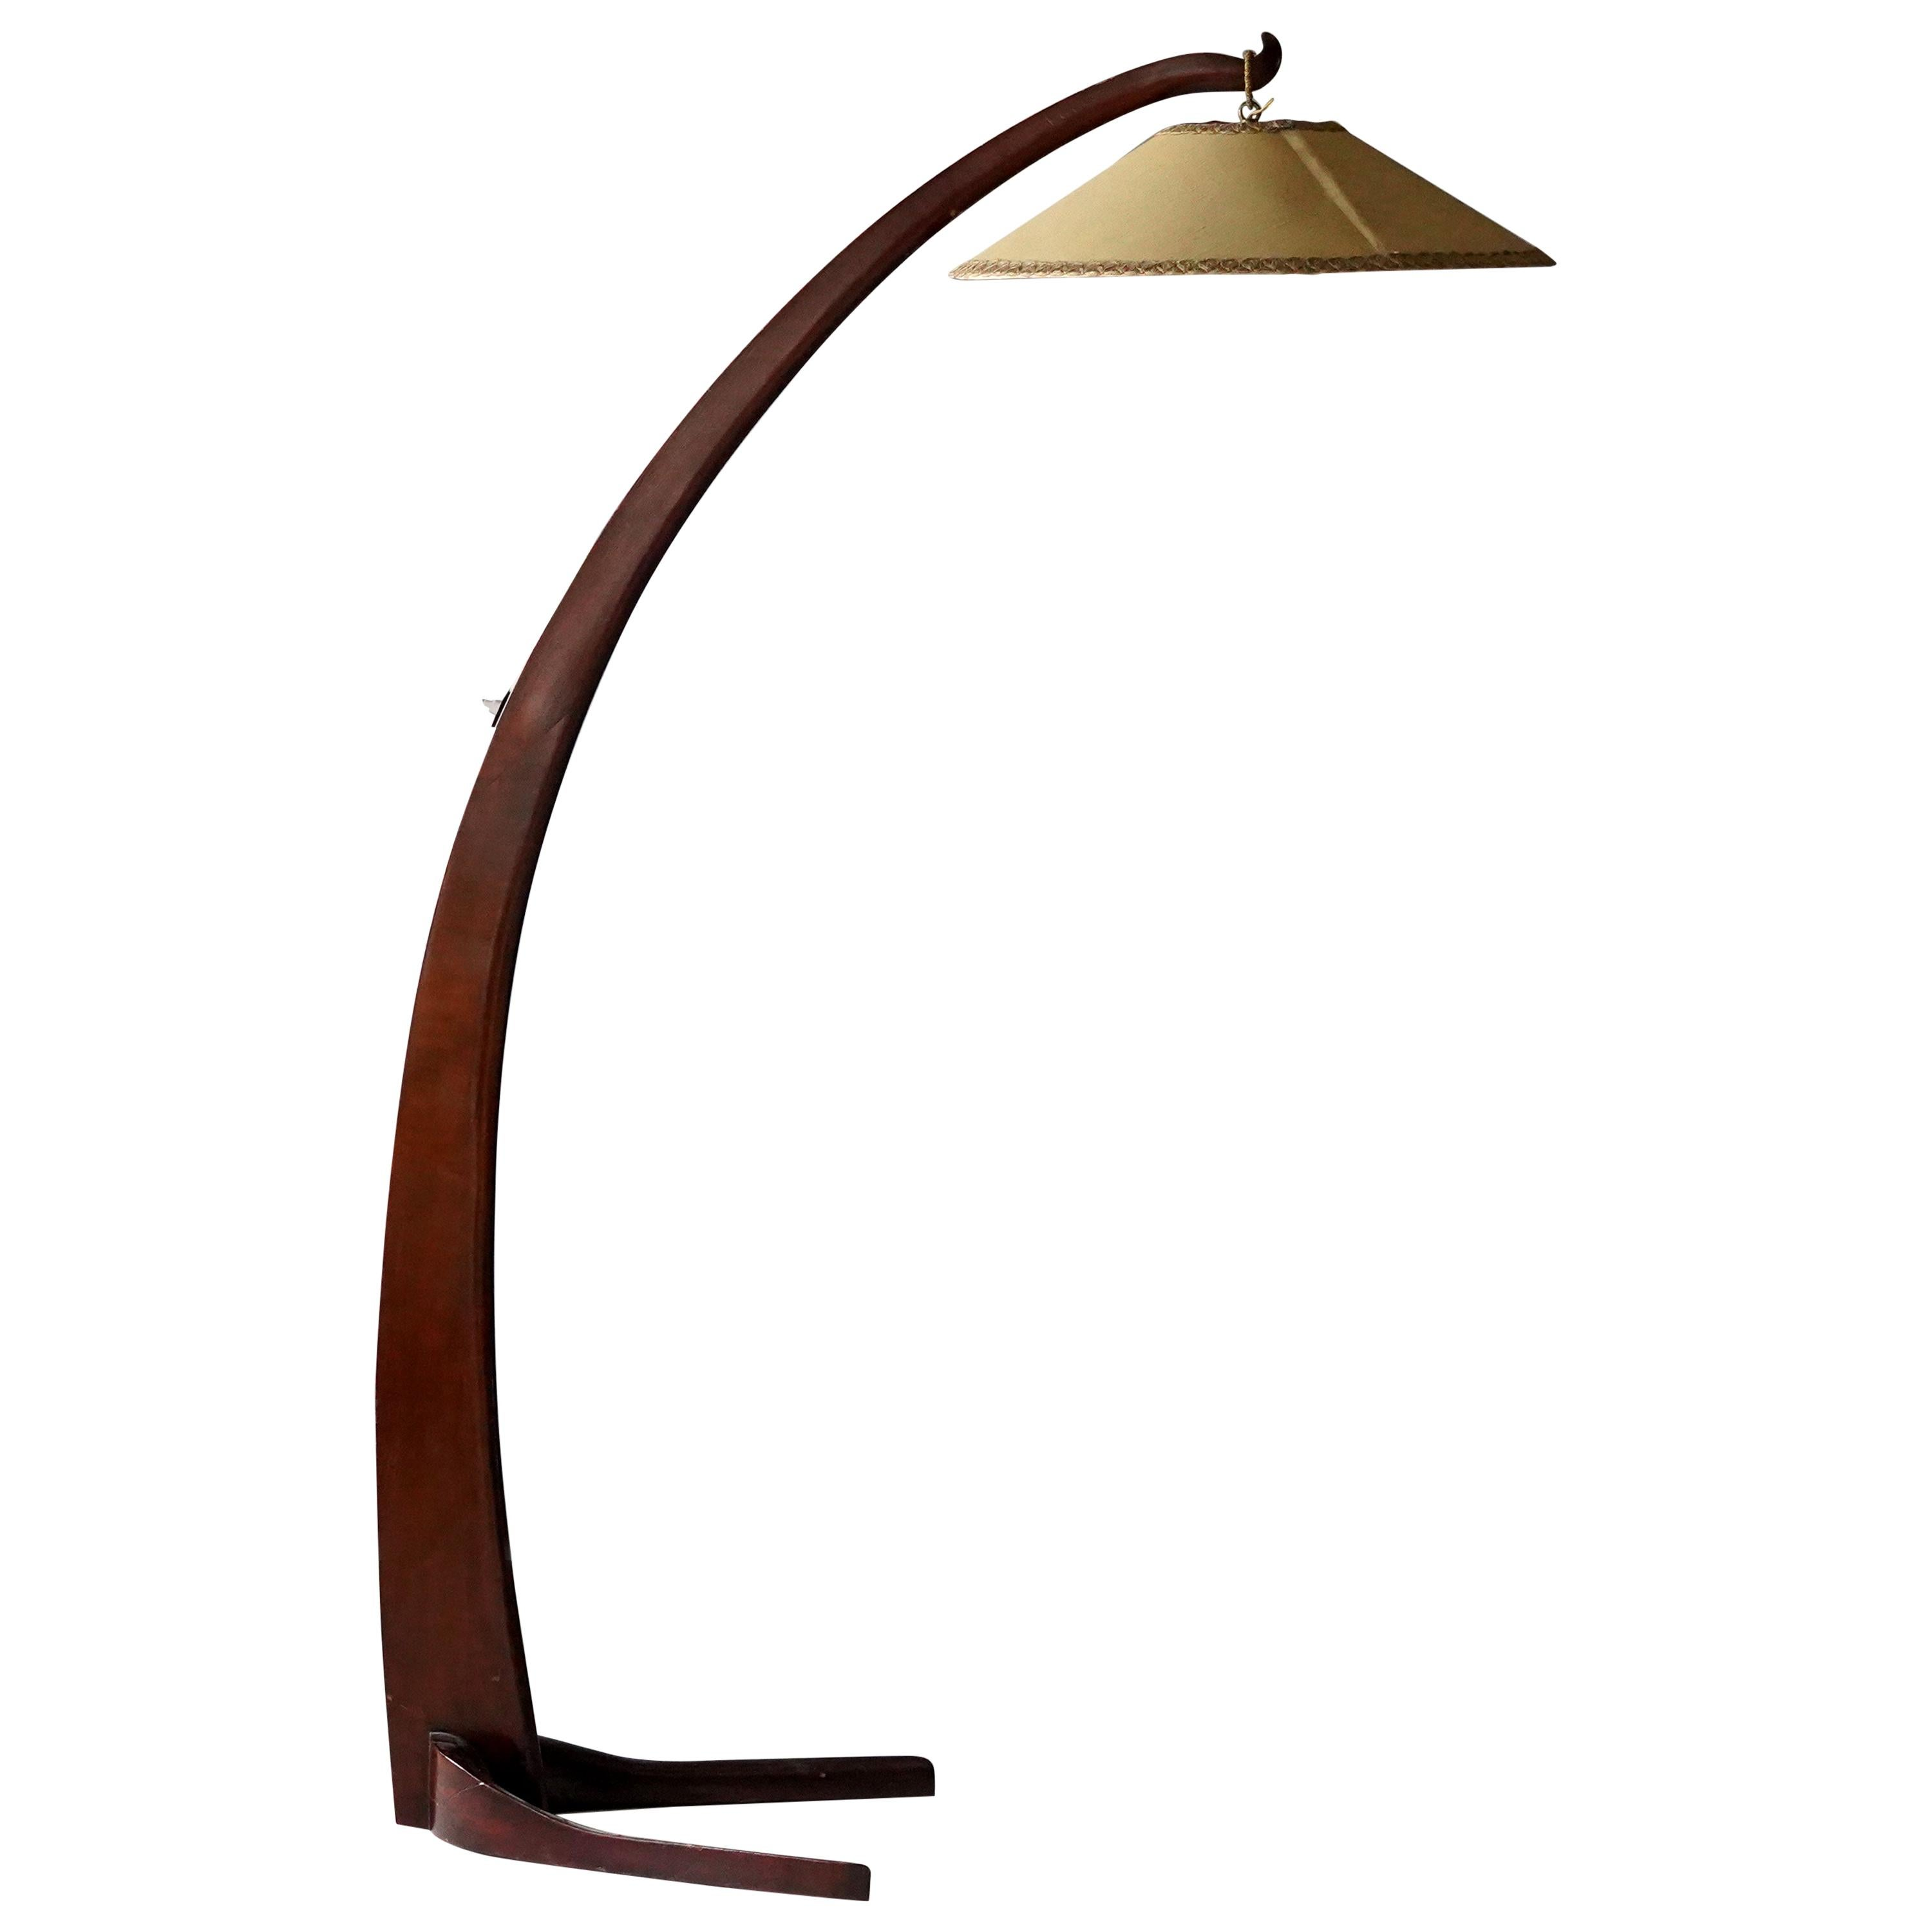 Large Modernist Curved Floor Lamp, Walnut, Brass, Fabric, Italy, 1940s